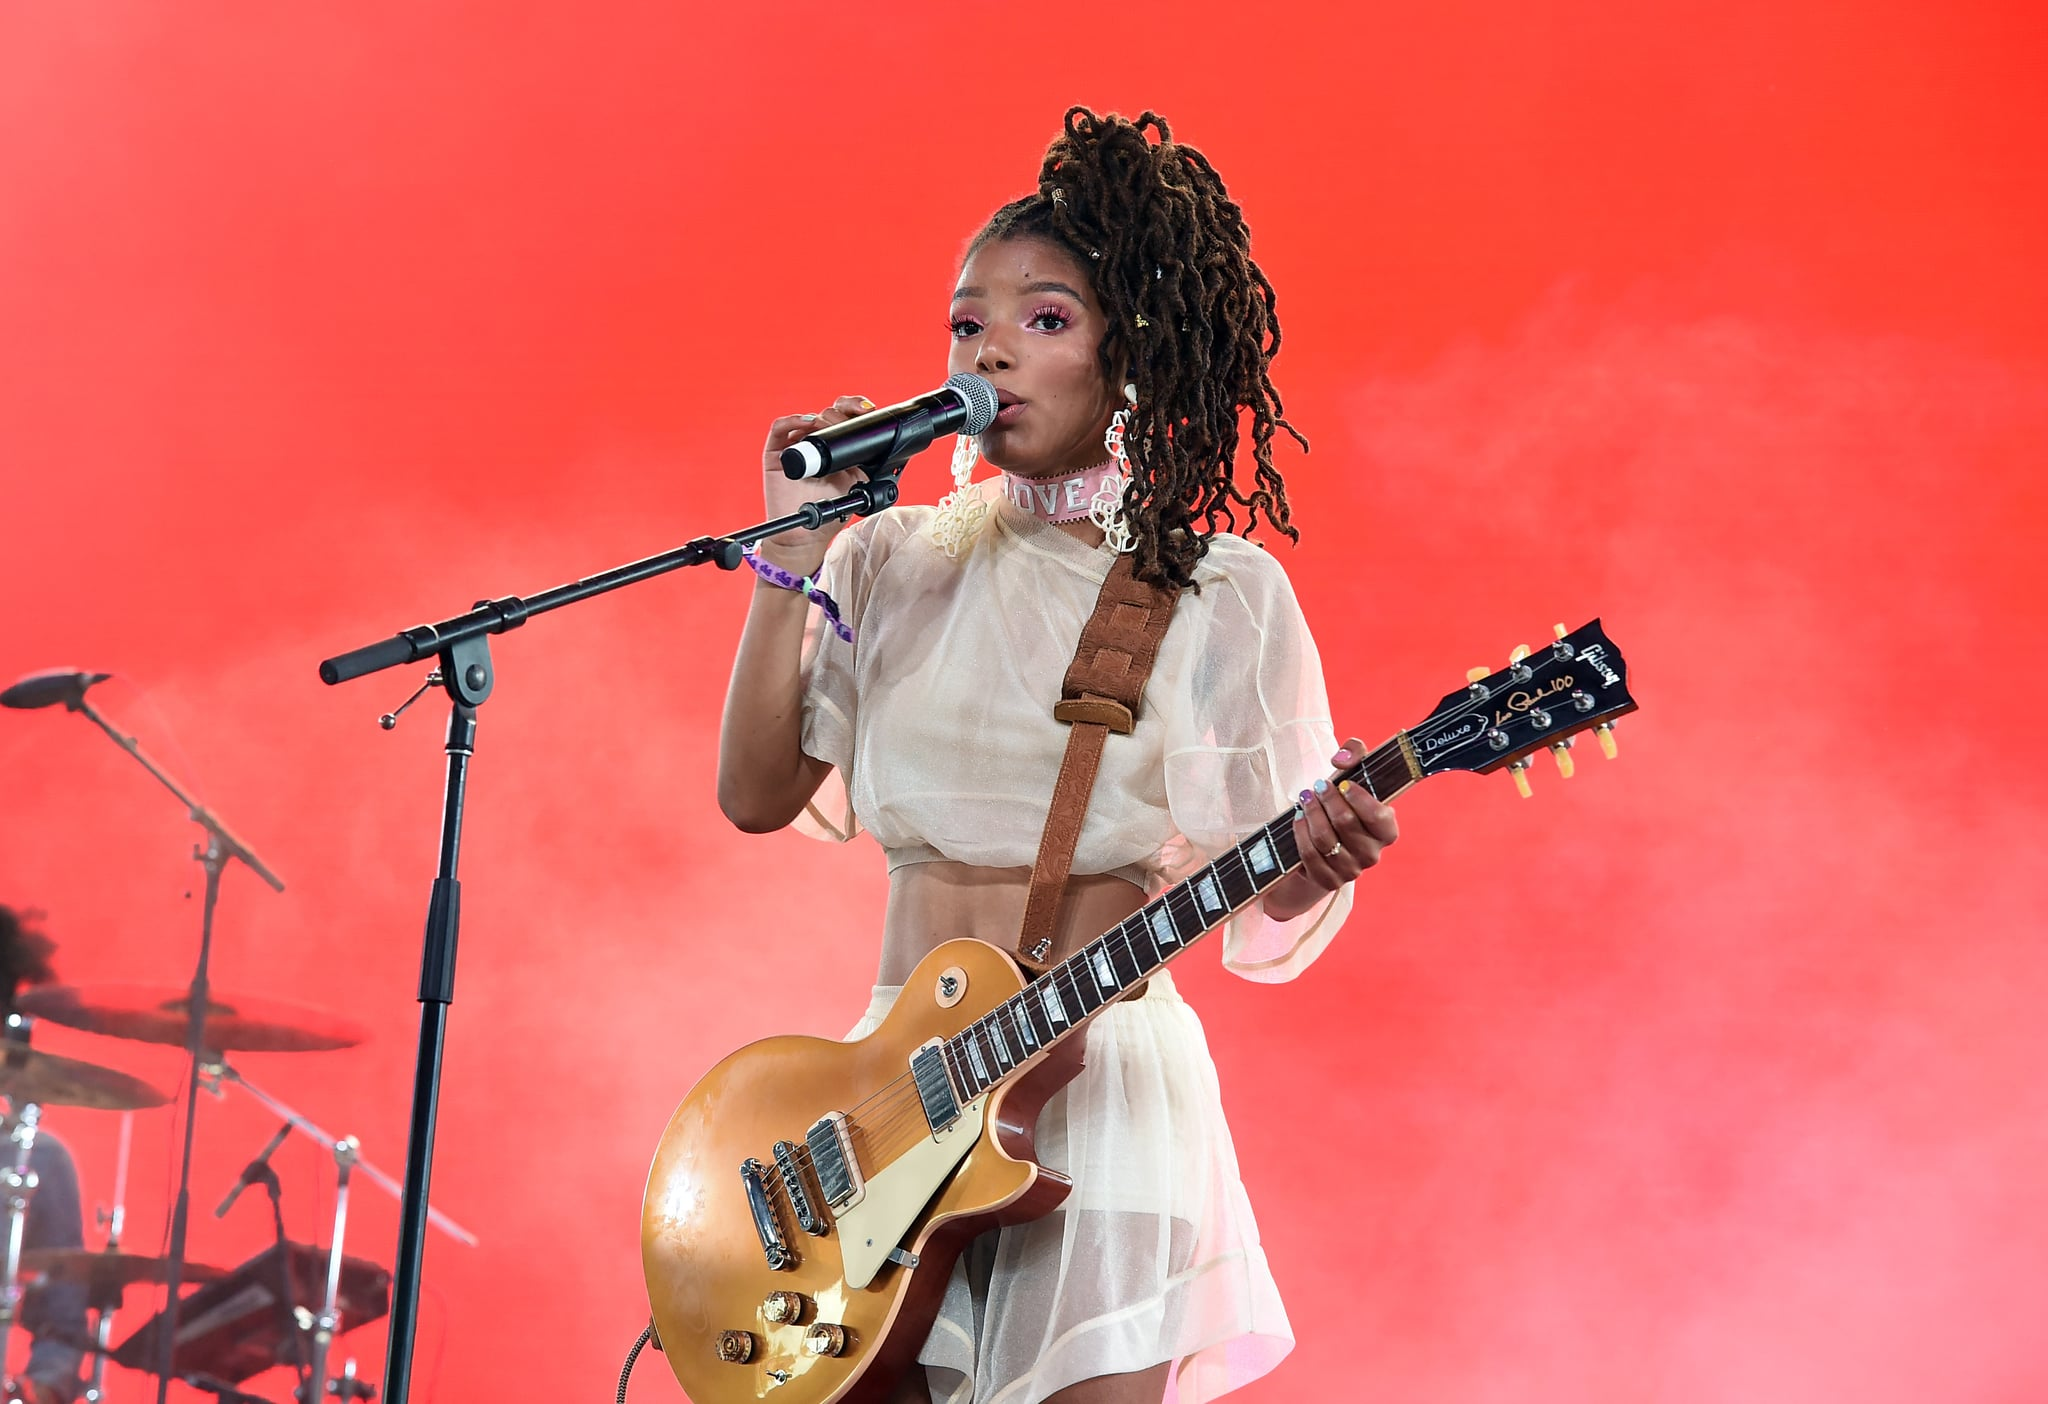 INDIO, CA - APRIL 21:  Halle Bailey of Chloe x Halle performs onstage during the 2018 Coachella Valley Music And Arts Festival at the Empire Polo Field on April 21, 2018 in Indio, California.  (Photo by Kevin Winter/Getty Images for Coachella)